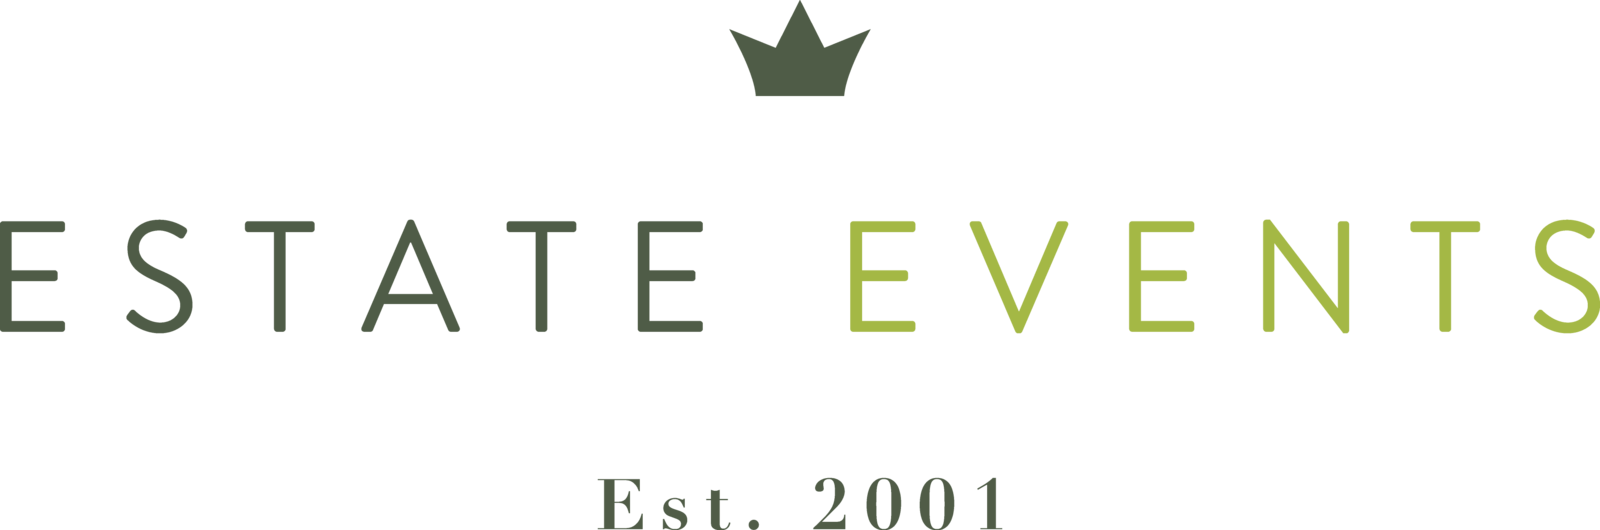 Estate-Events-Logo-kleur-1